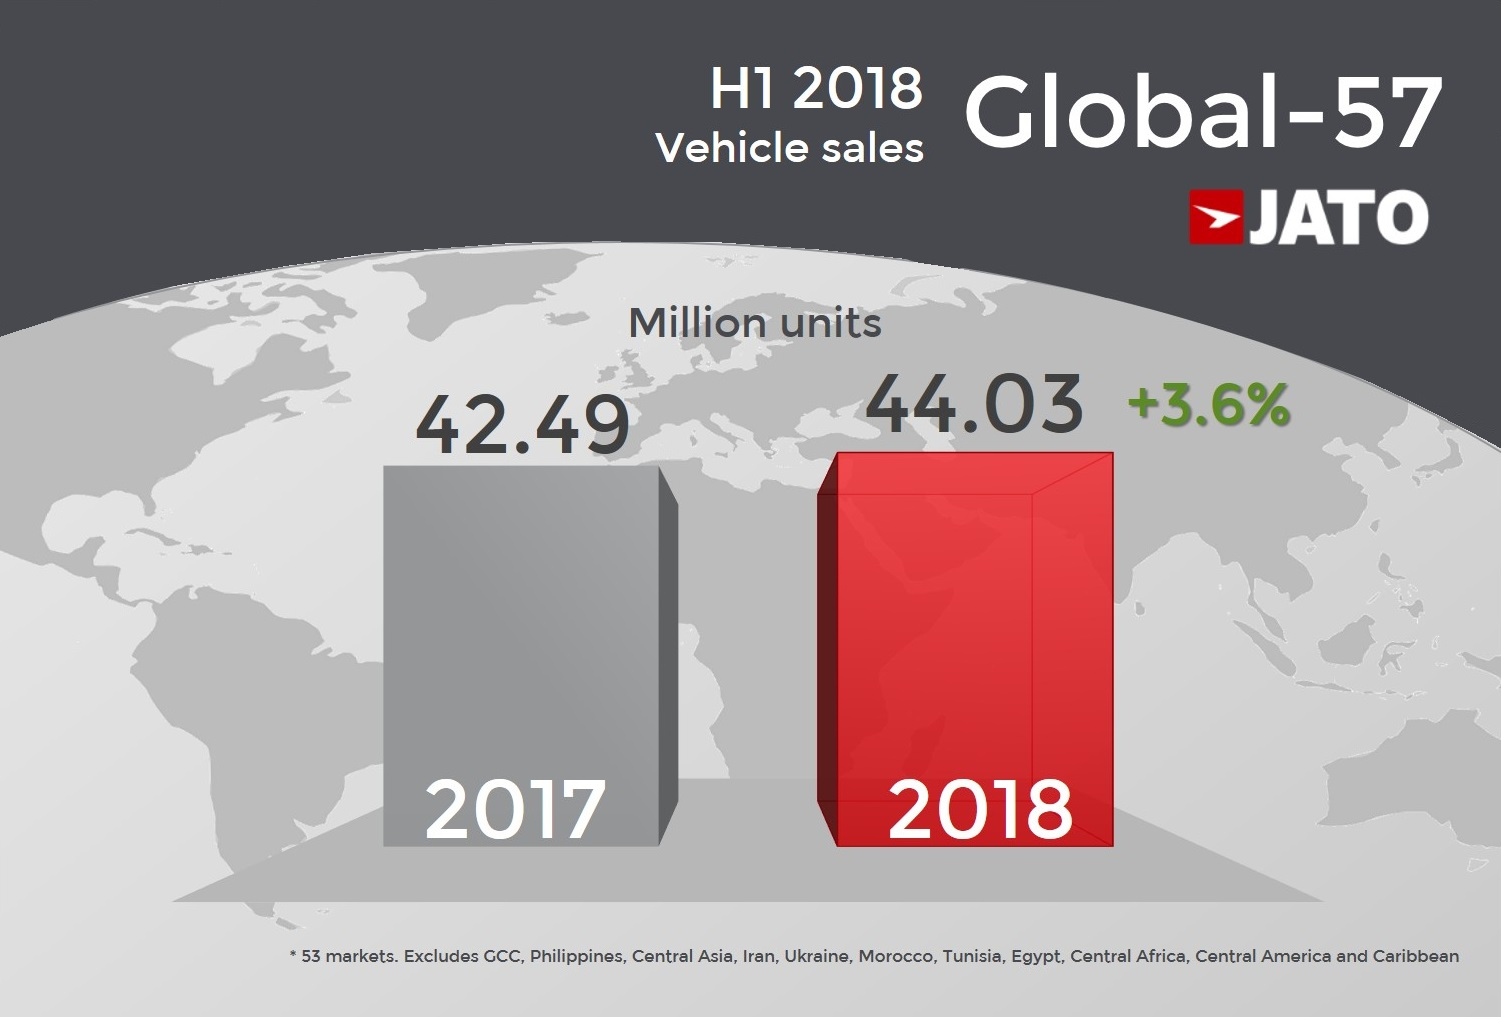 Car Manufacturers Global Sales 2018 Mail: The Global Vehicle Sales Expansion Continues In H1 2018